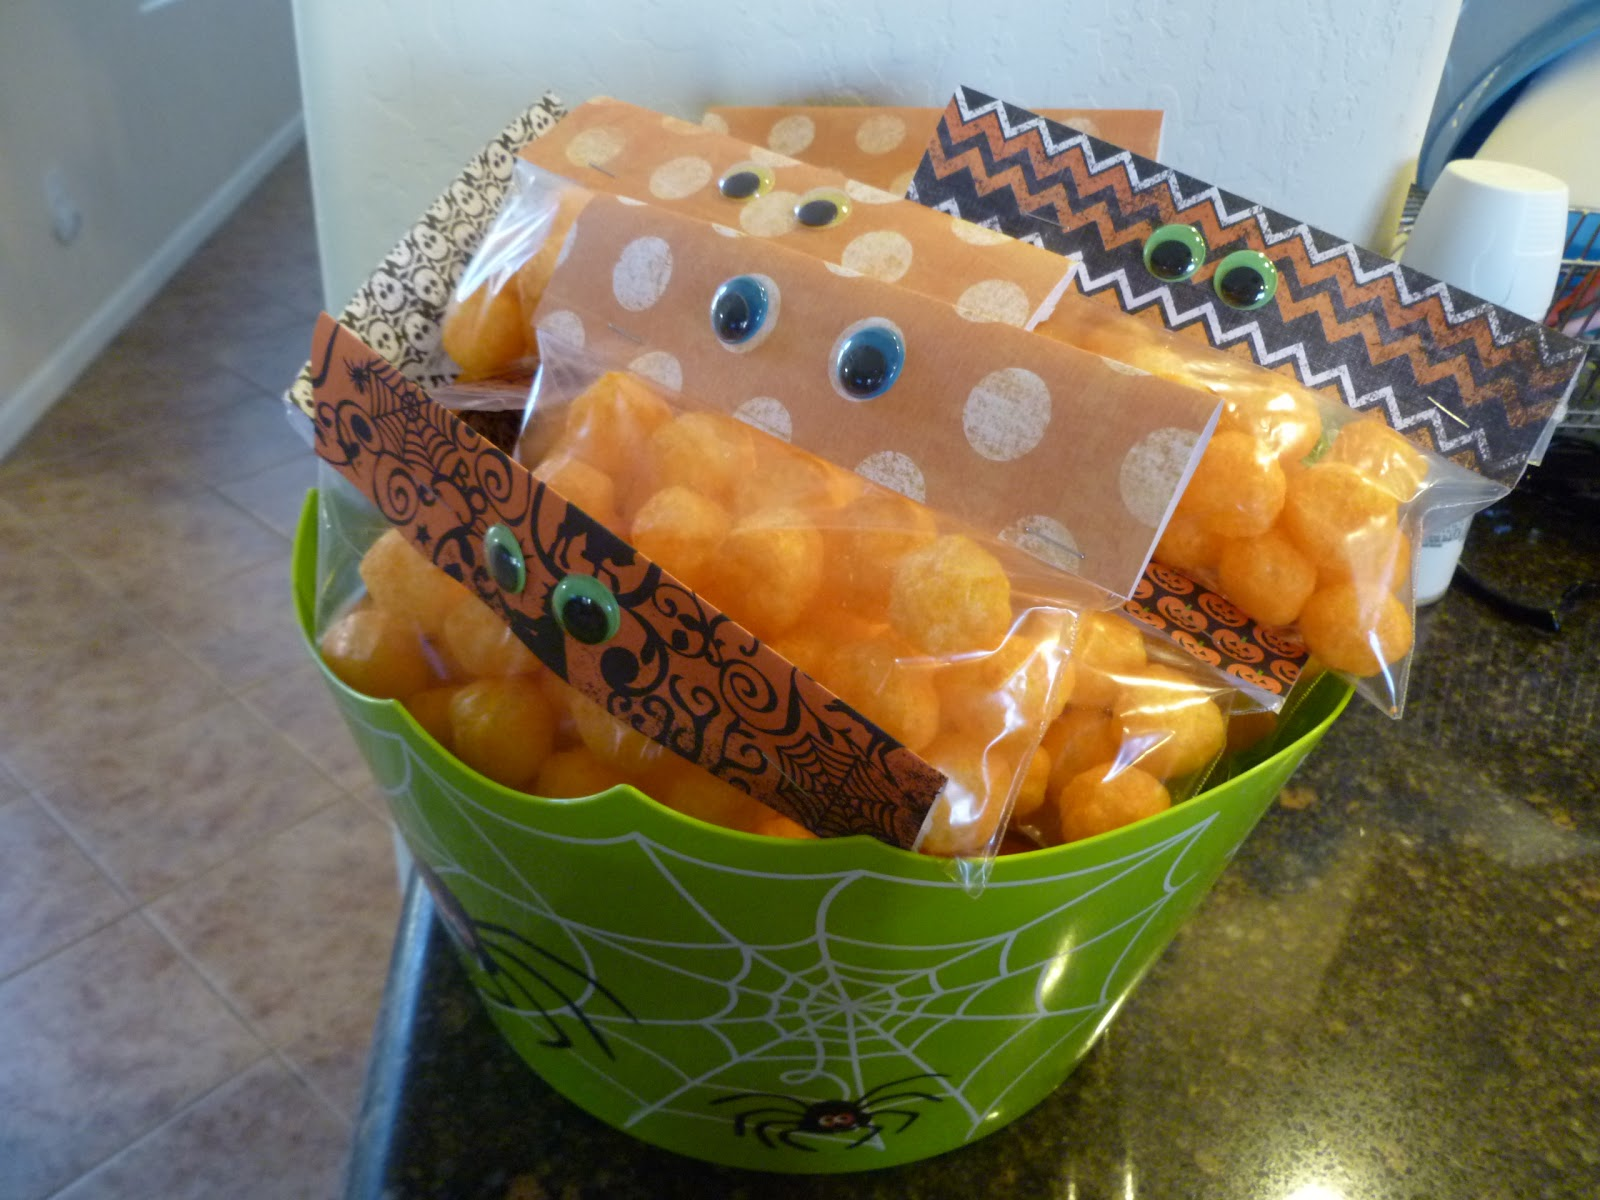 How To Decorate A Cake With Ziploc Bag